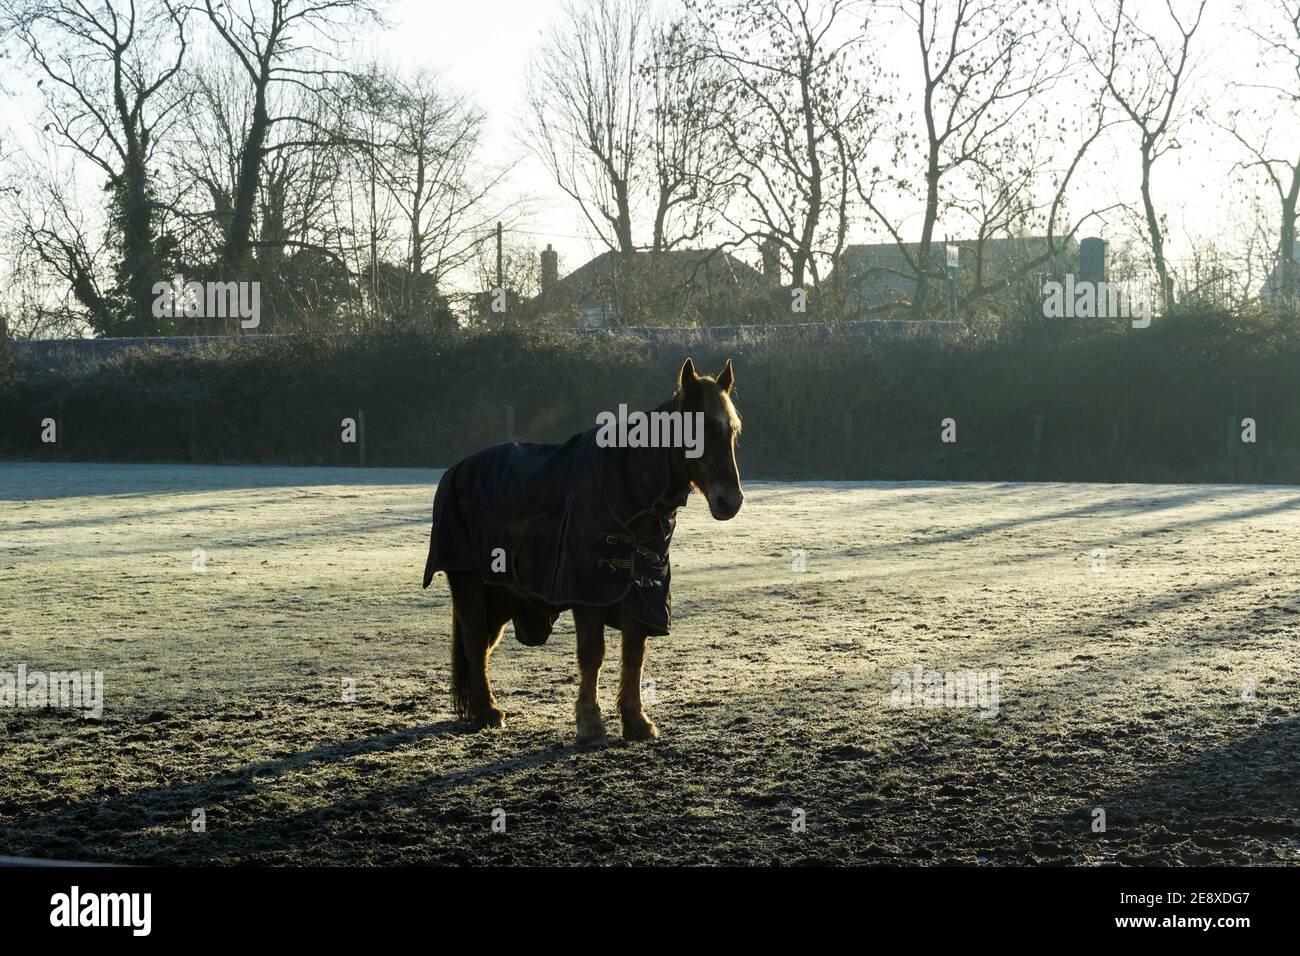 lonely-horse-in-frosty-field-on-cold-morning-light-2E8XDG7.jpg